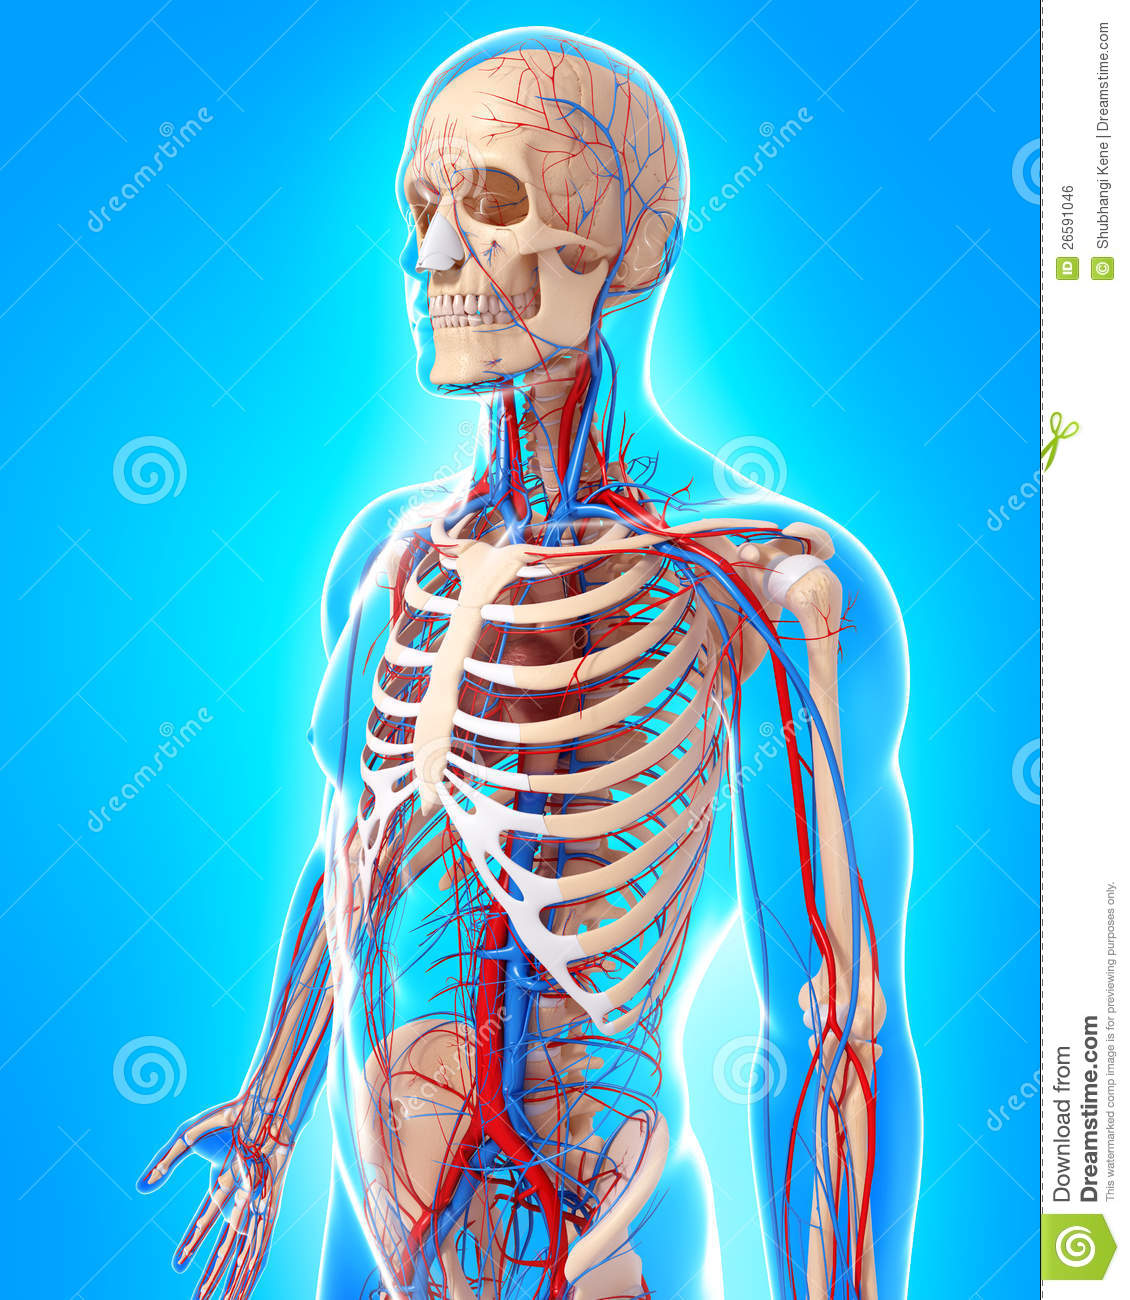 Circulatory System Of Male Body Side View Royalty Free